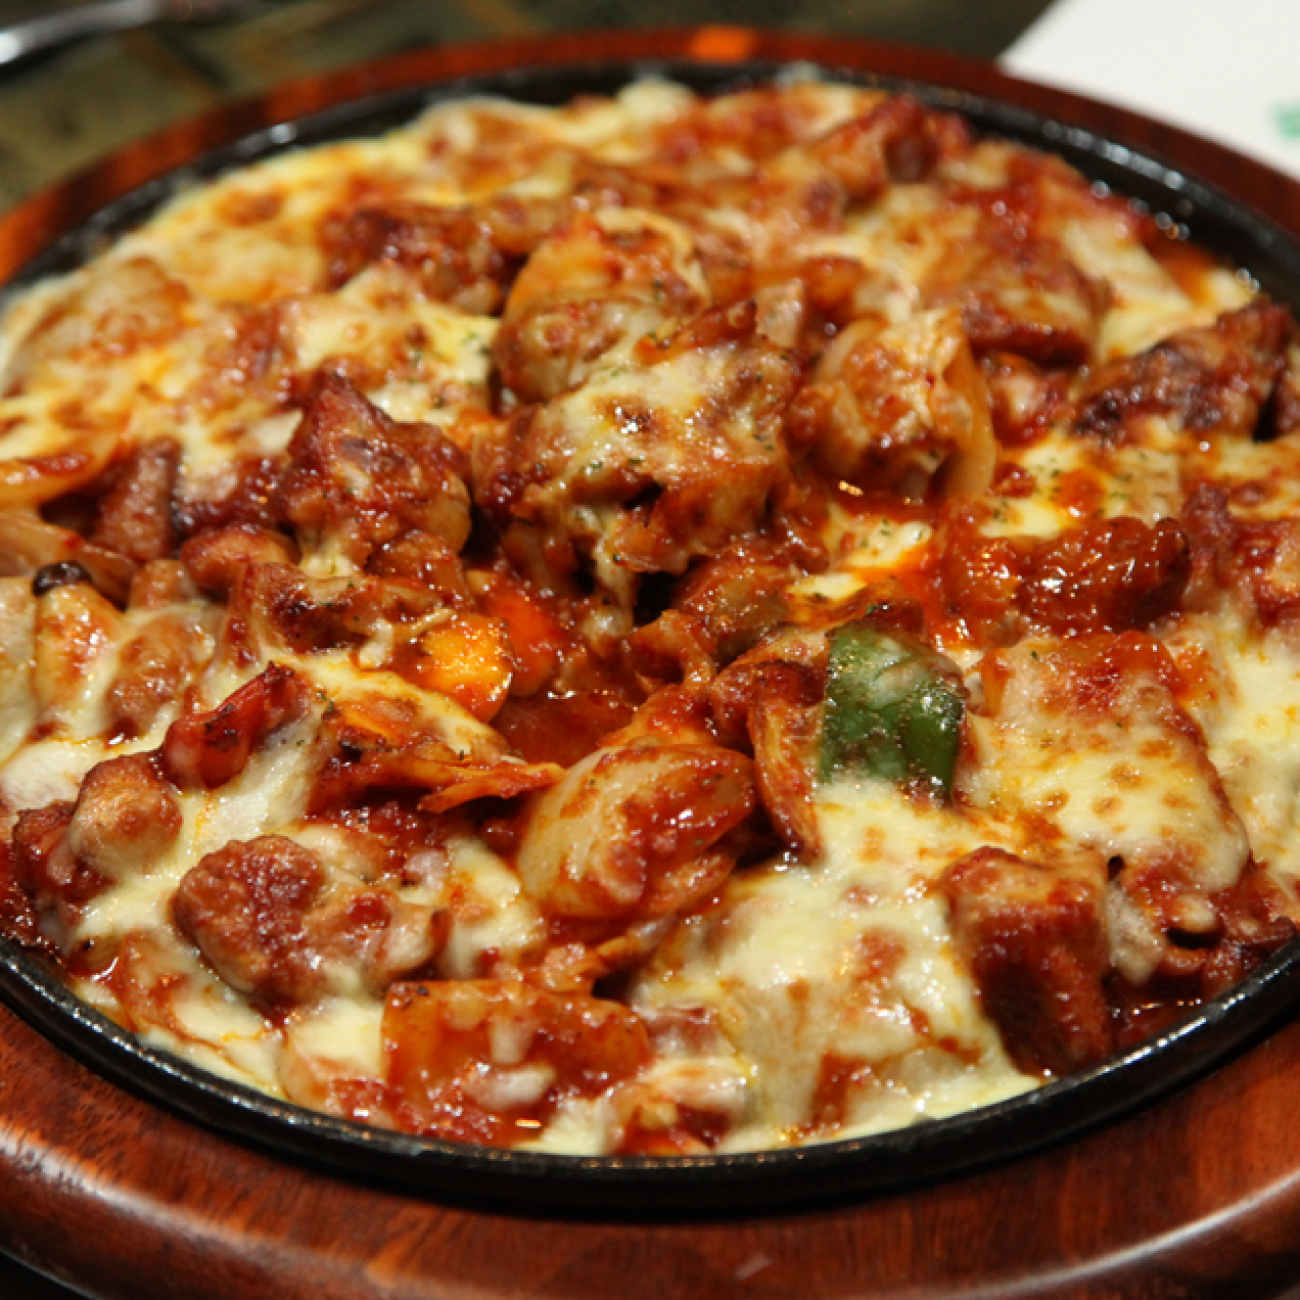 Cheesy Fire Chicken (Cheese Buldak 치즈불닭)